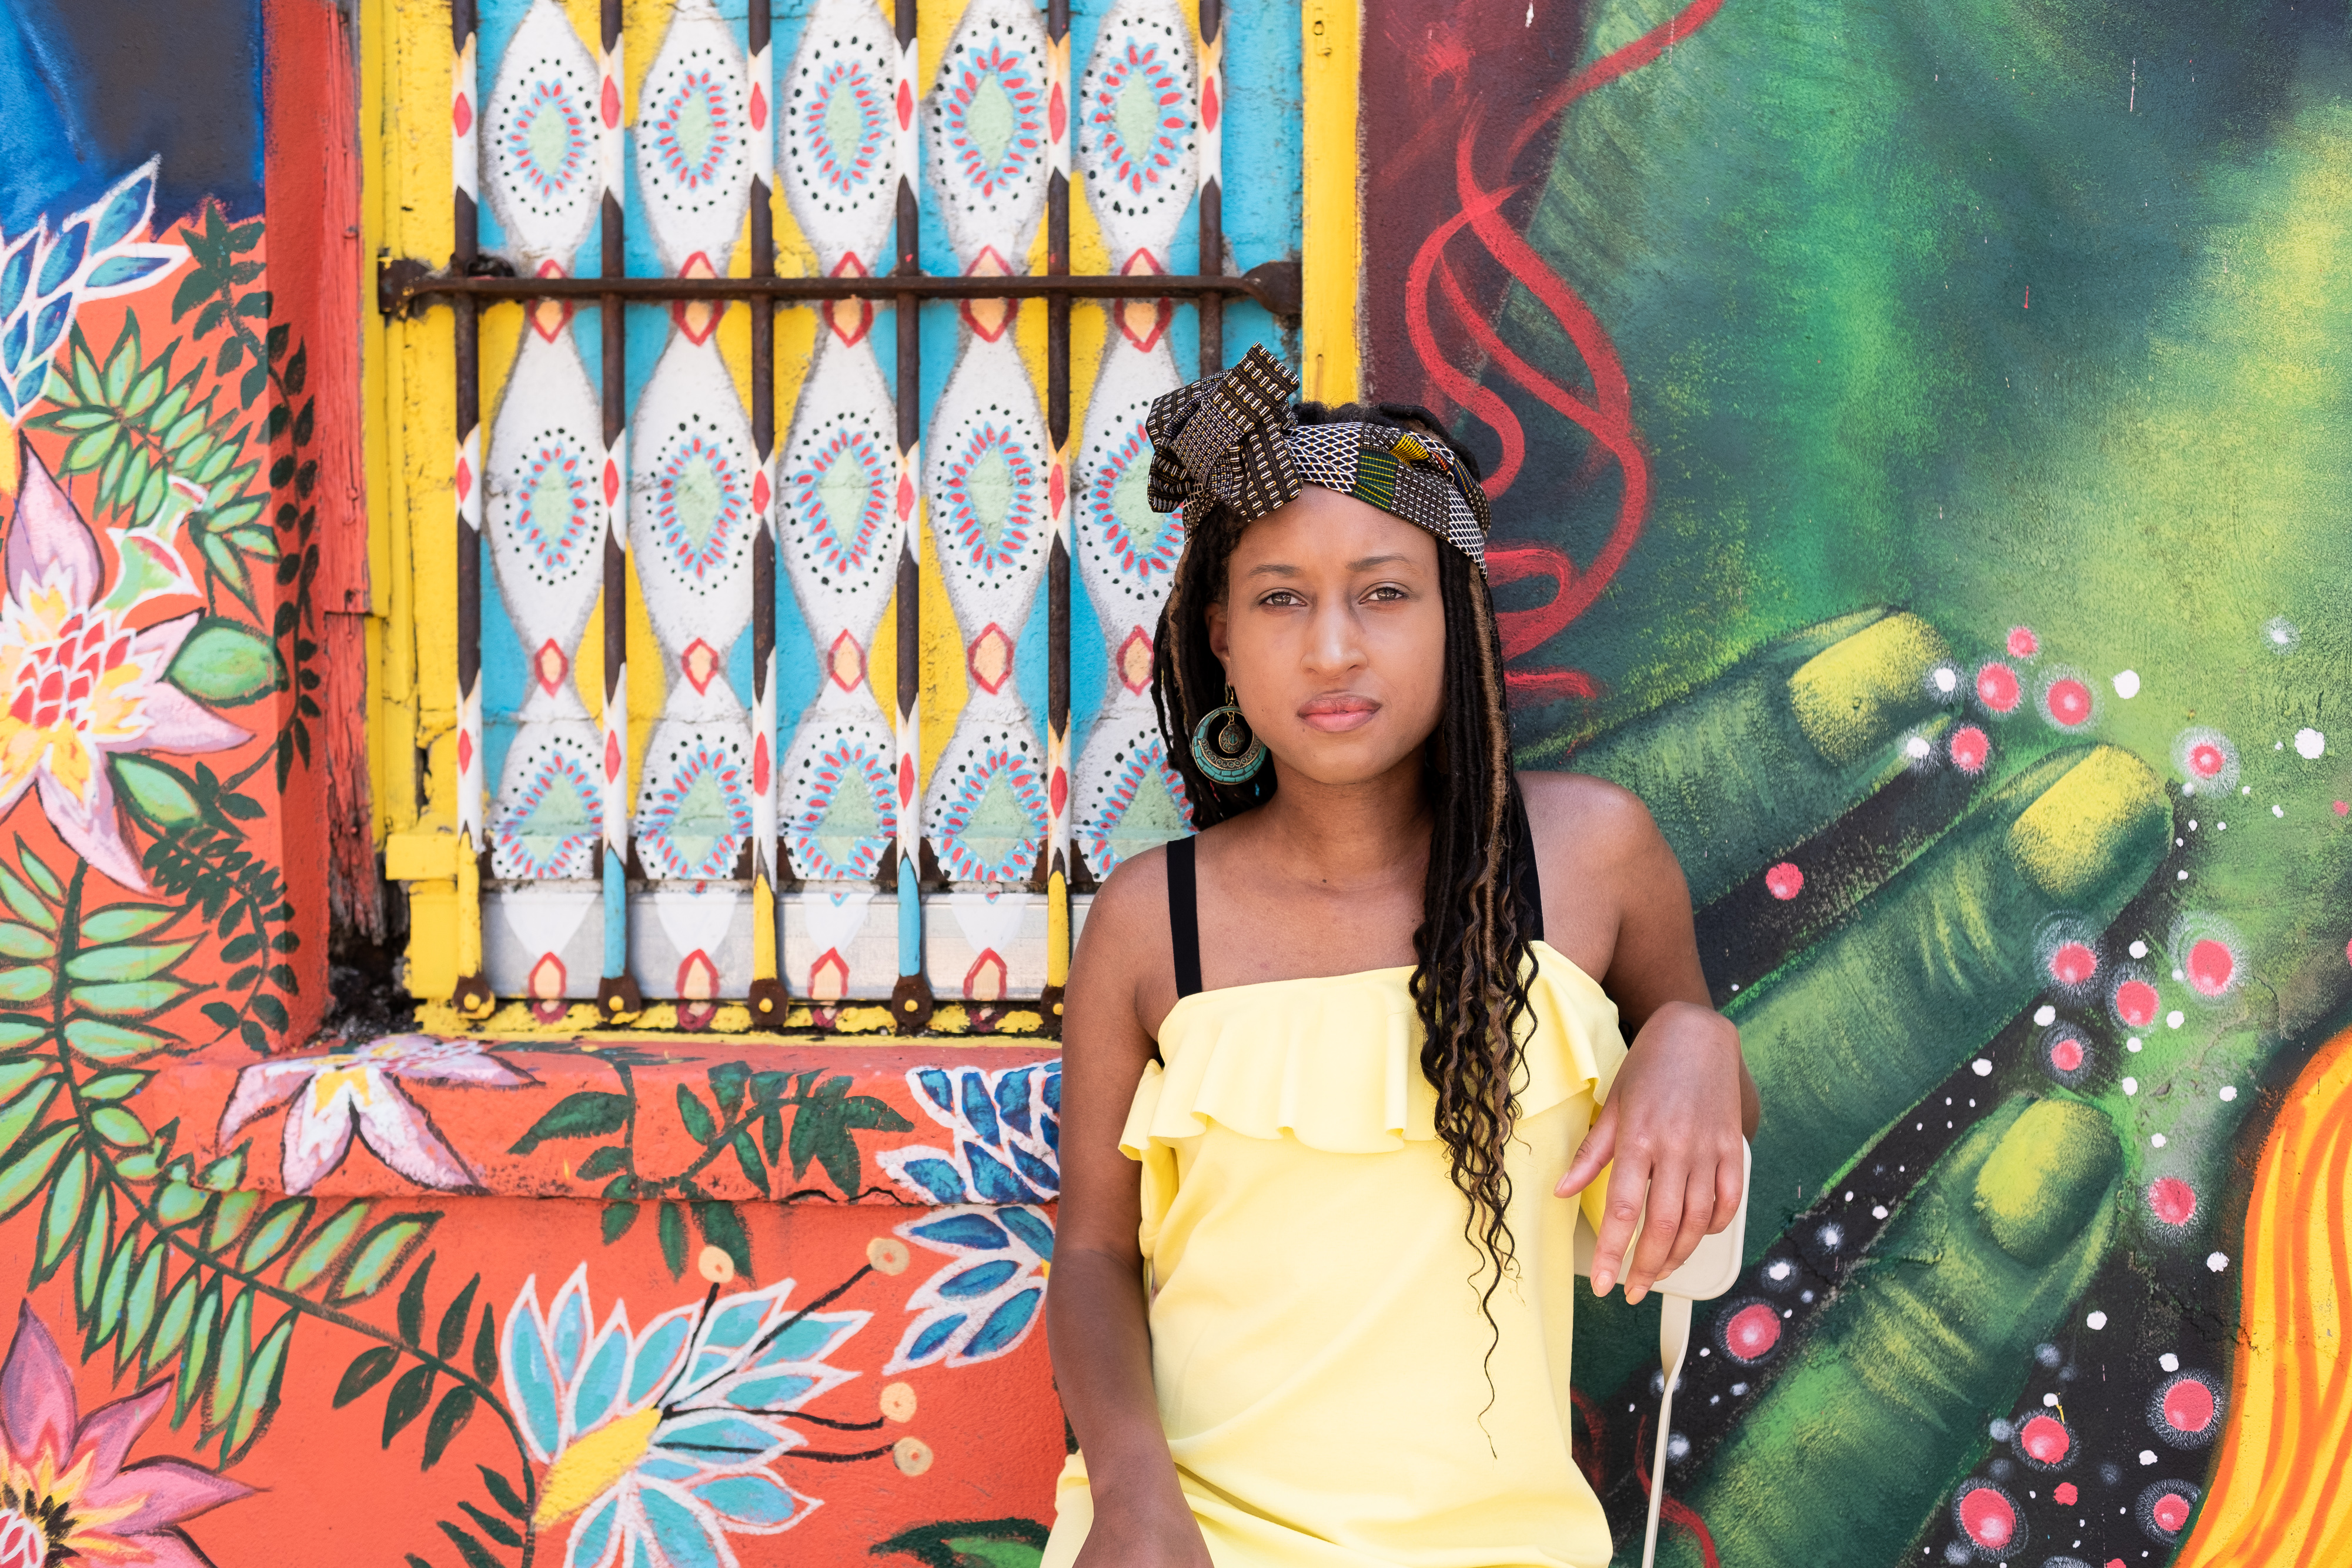 Beautiful woman wearing a brown headwrap with blocks of color throughout, against a colorful mural at Cassava House.